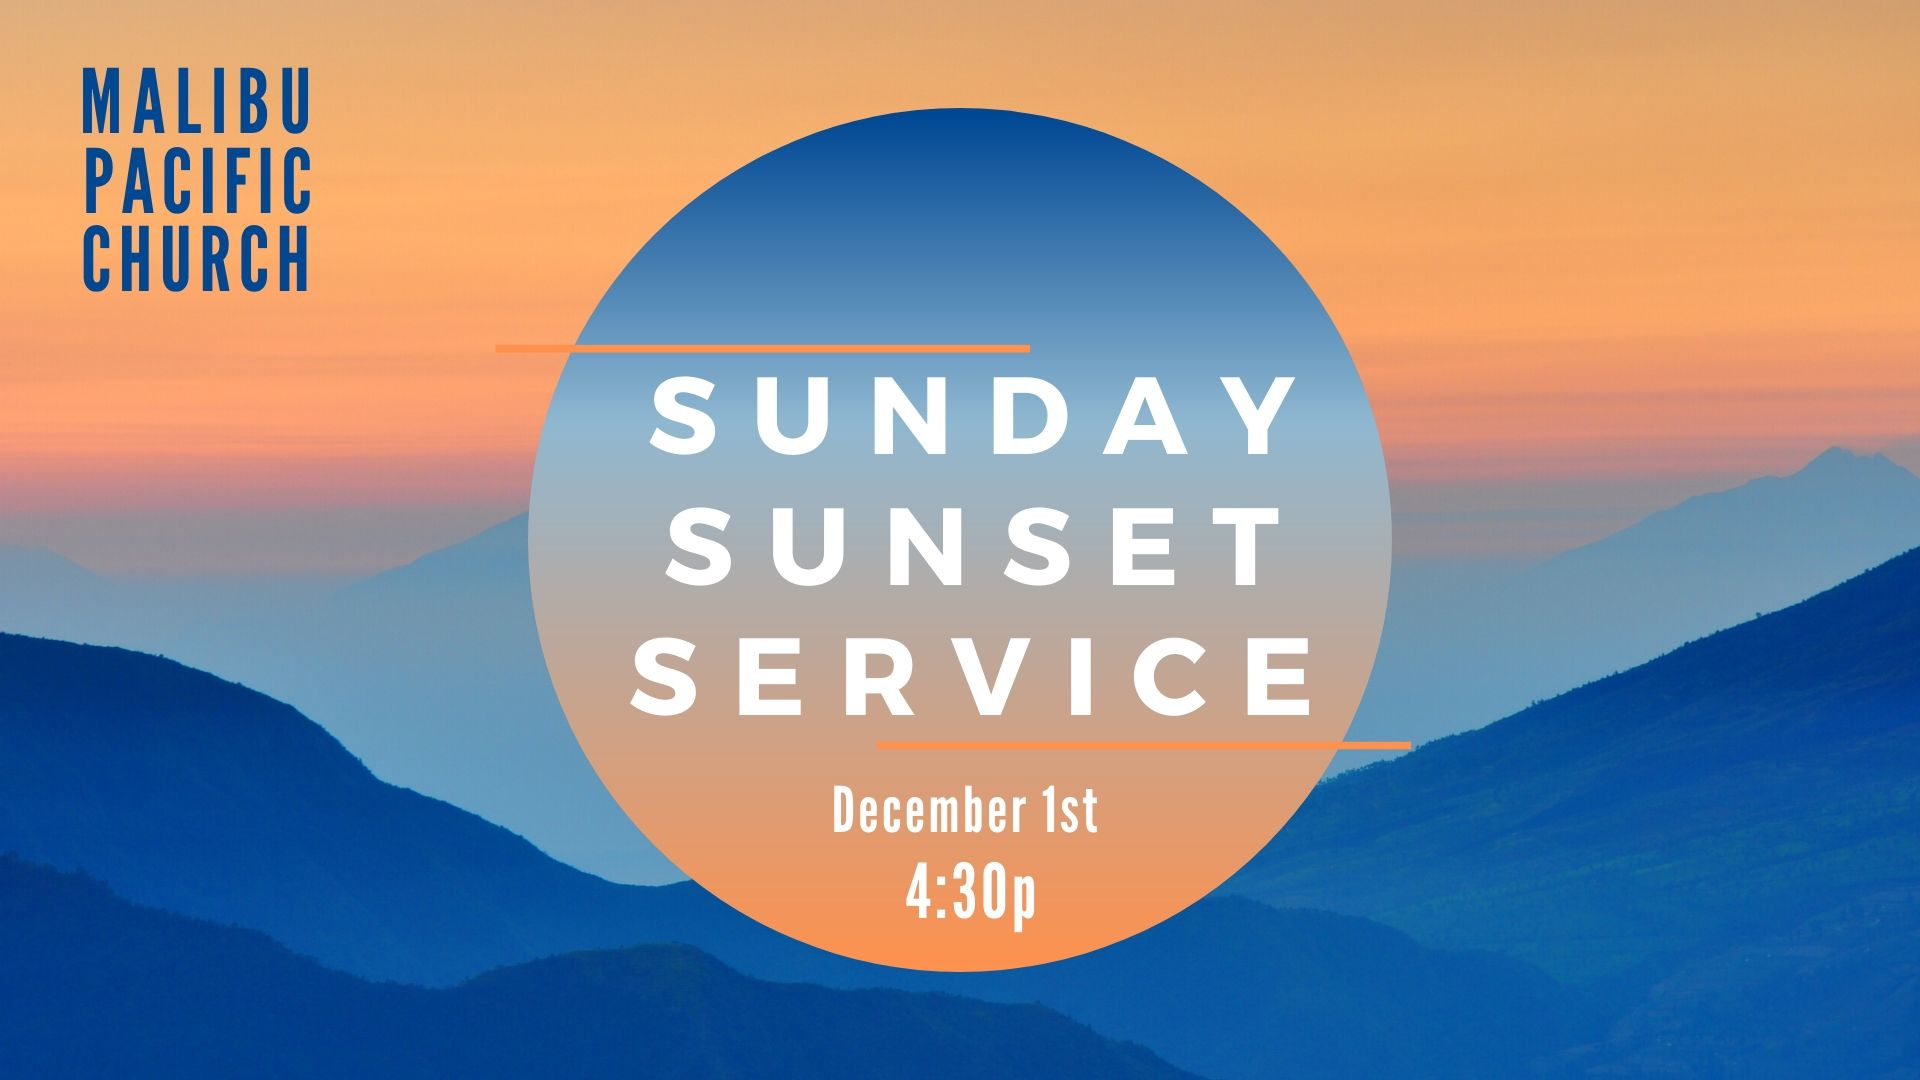 Malibu pacific church Sunset Service Presentation